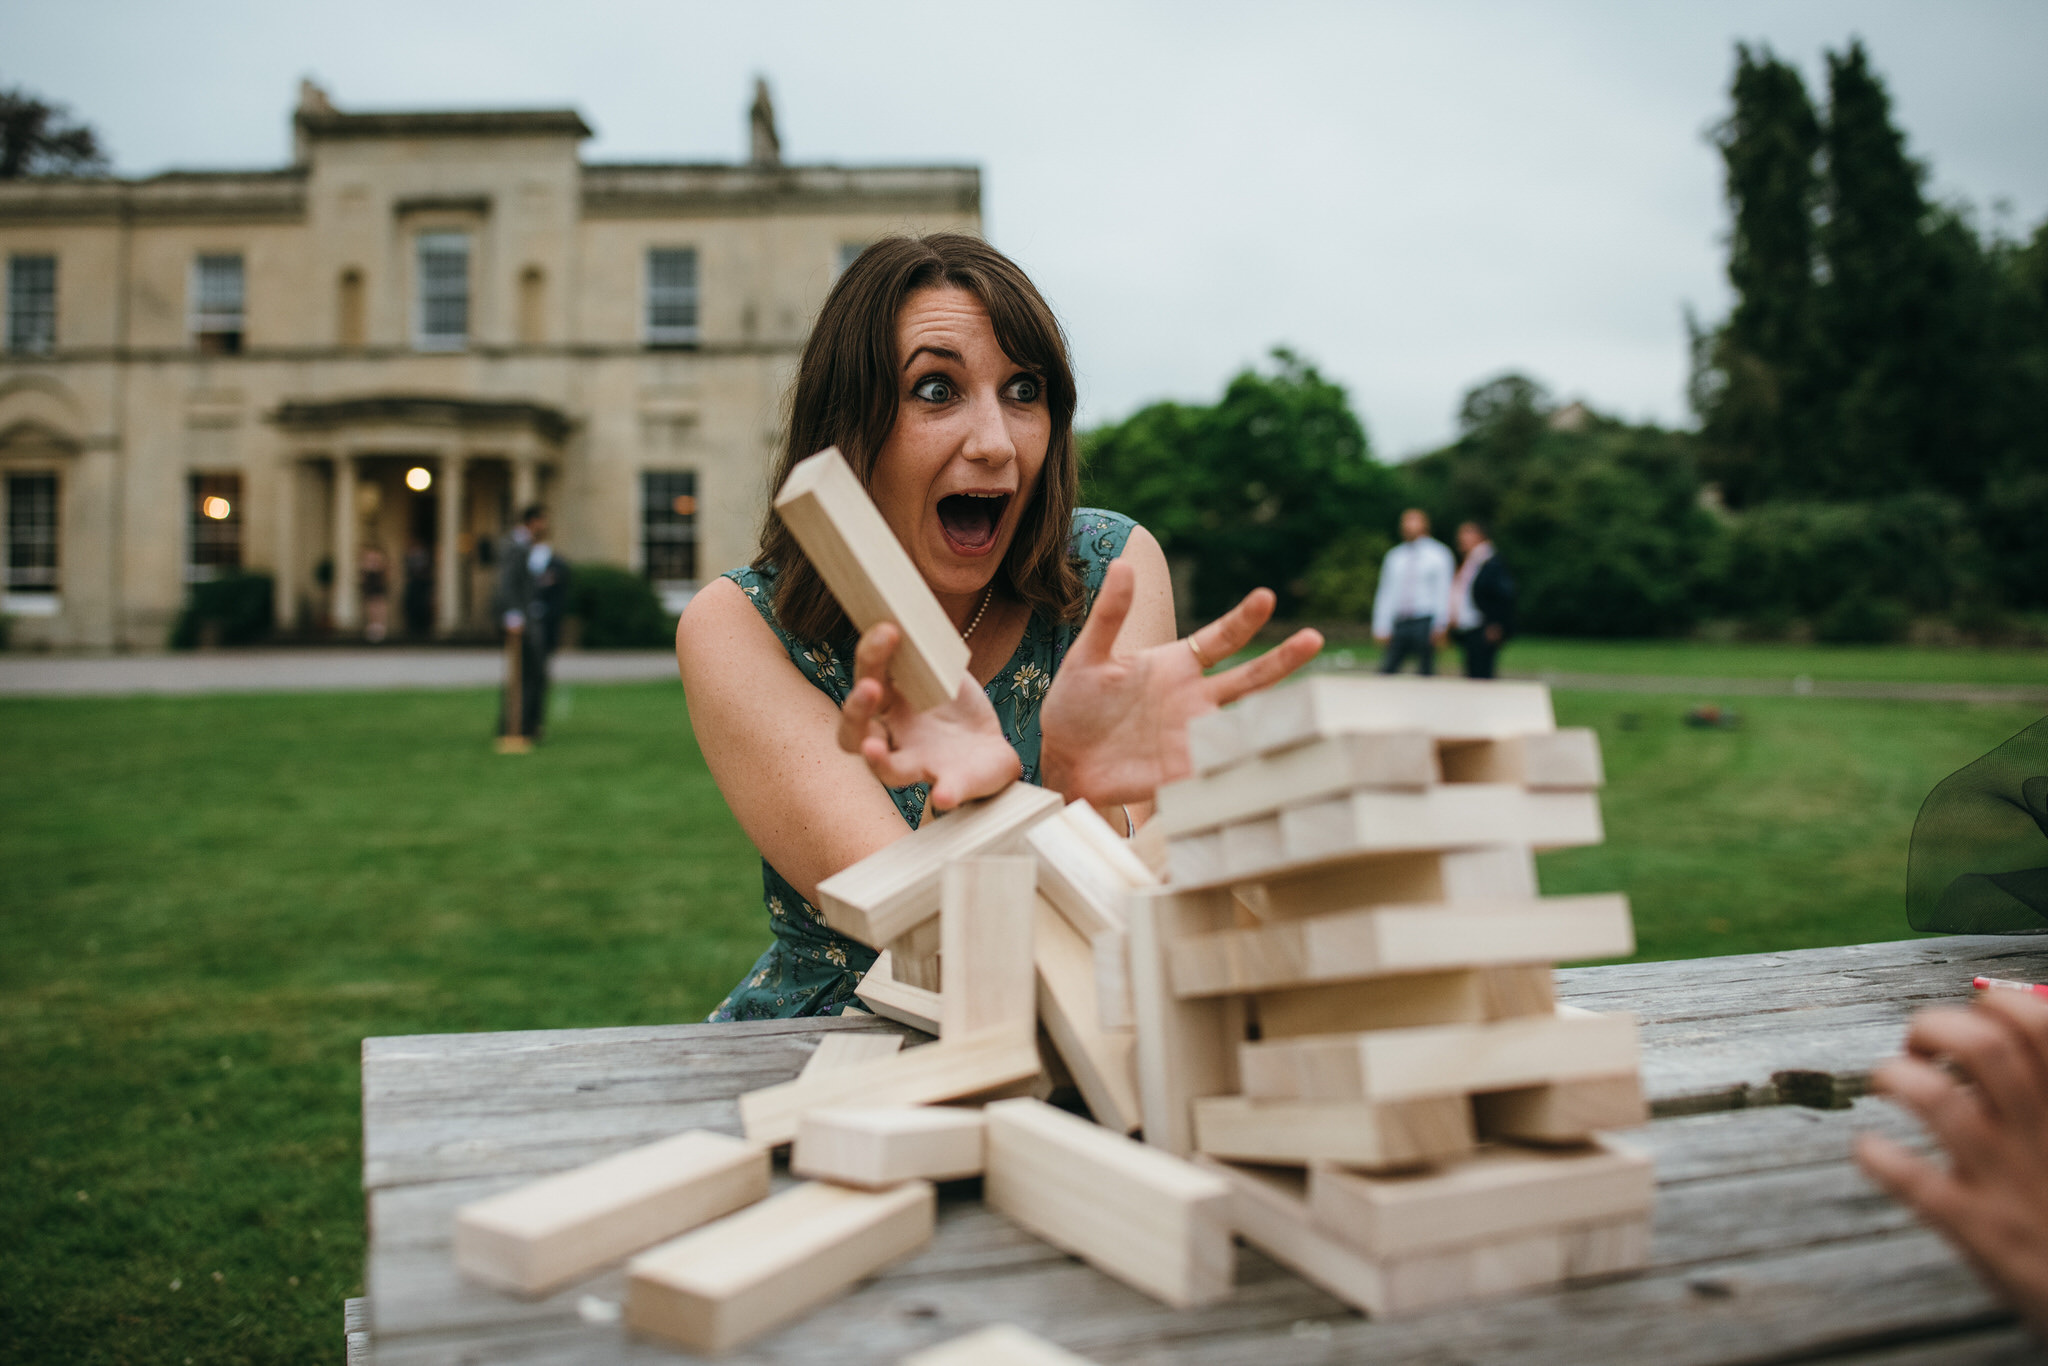 Games at Backwell house wedding